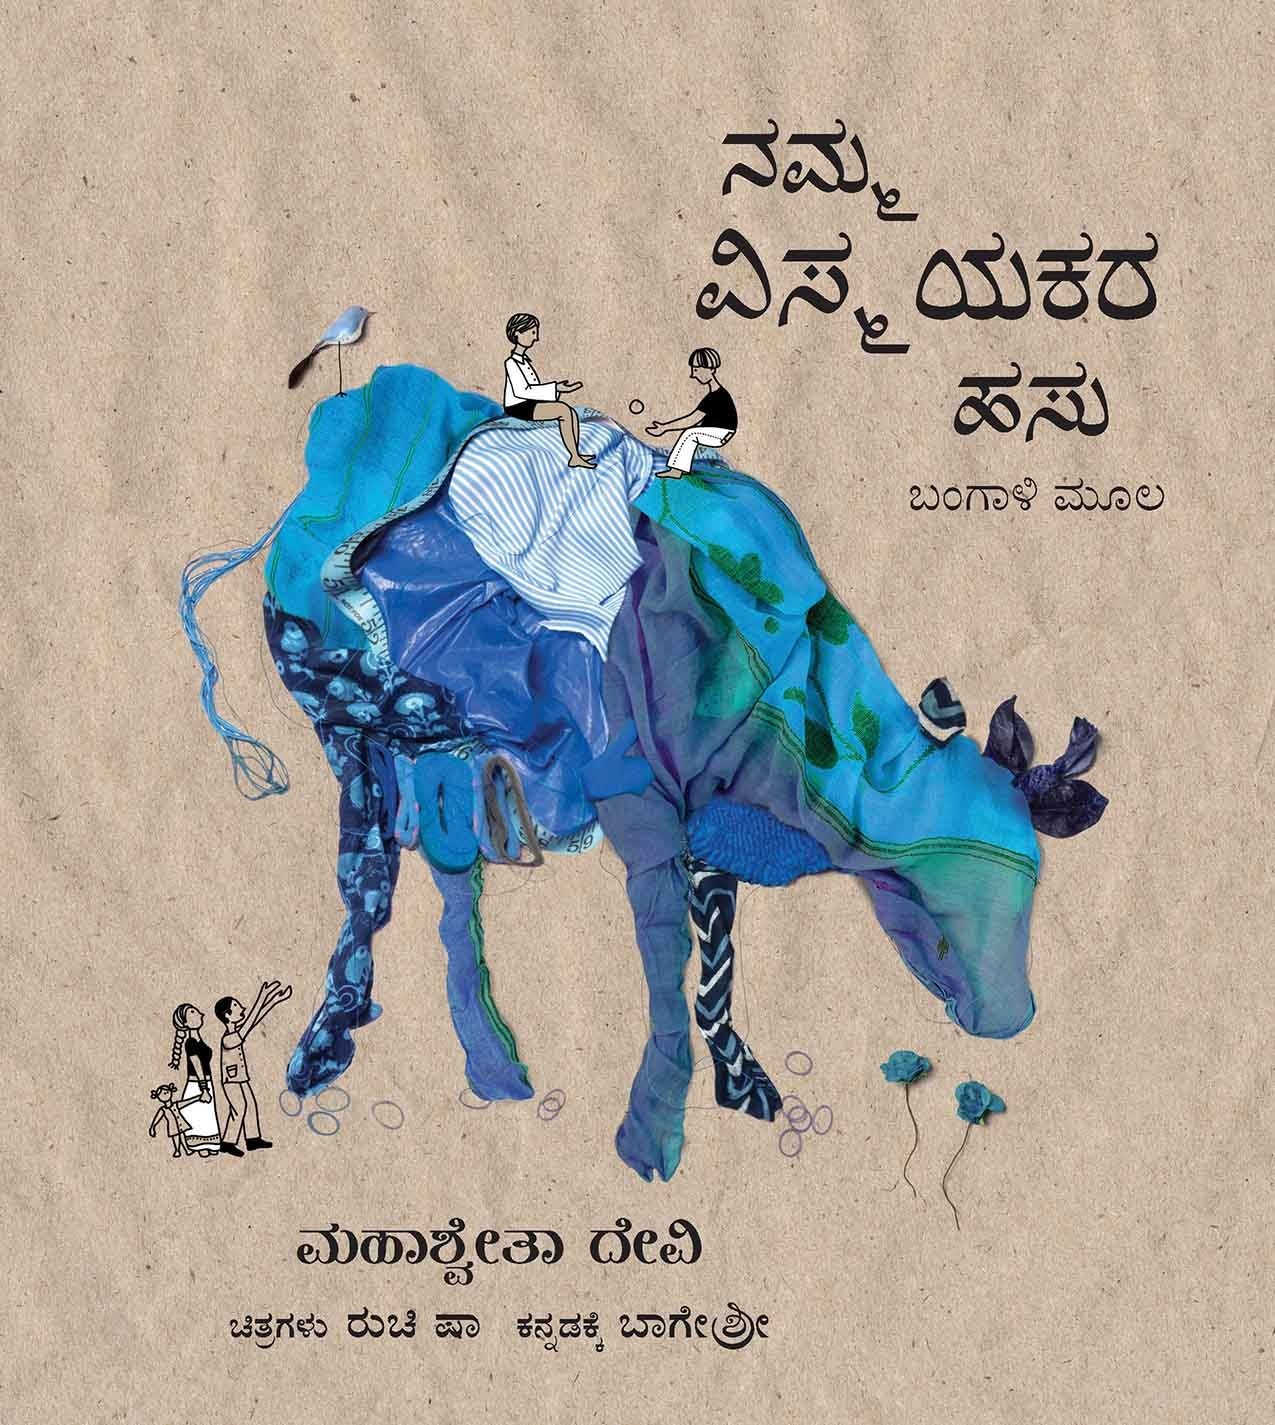 Our Incredible Cow/Namma Vismayakara Hasu (Kannada)